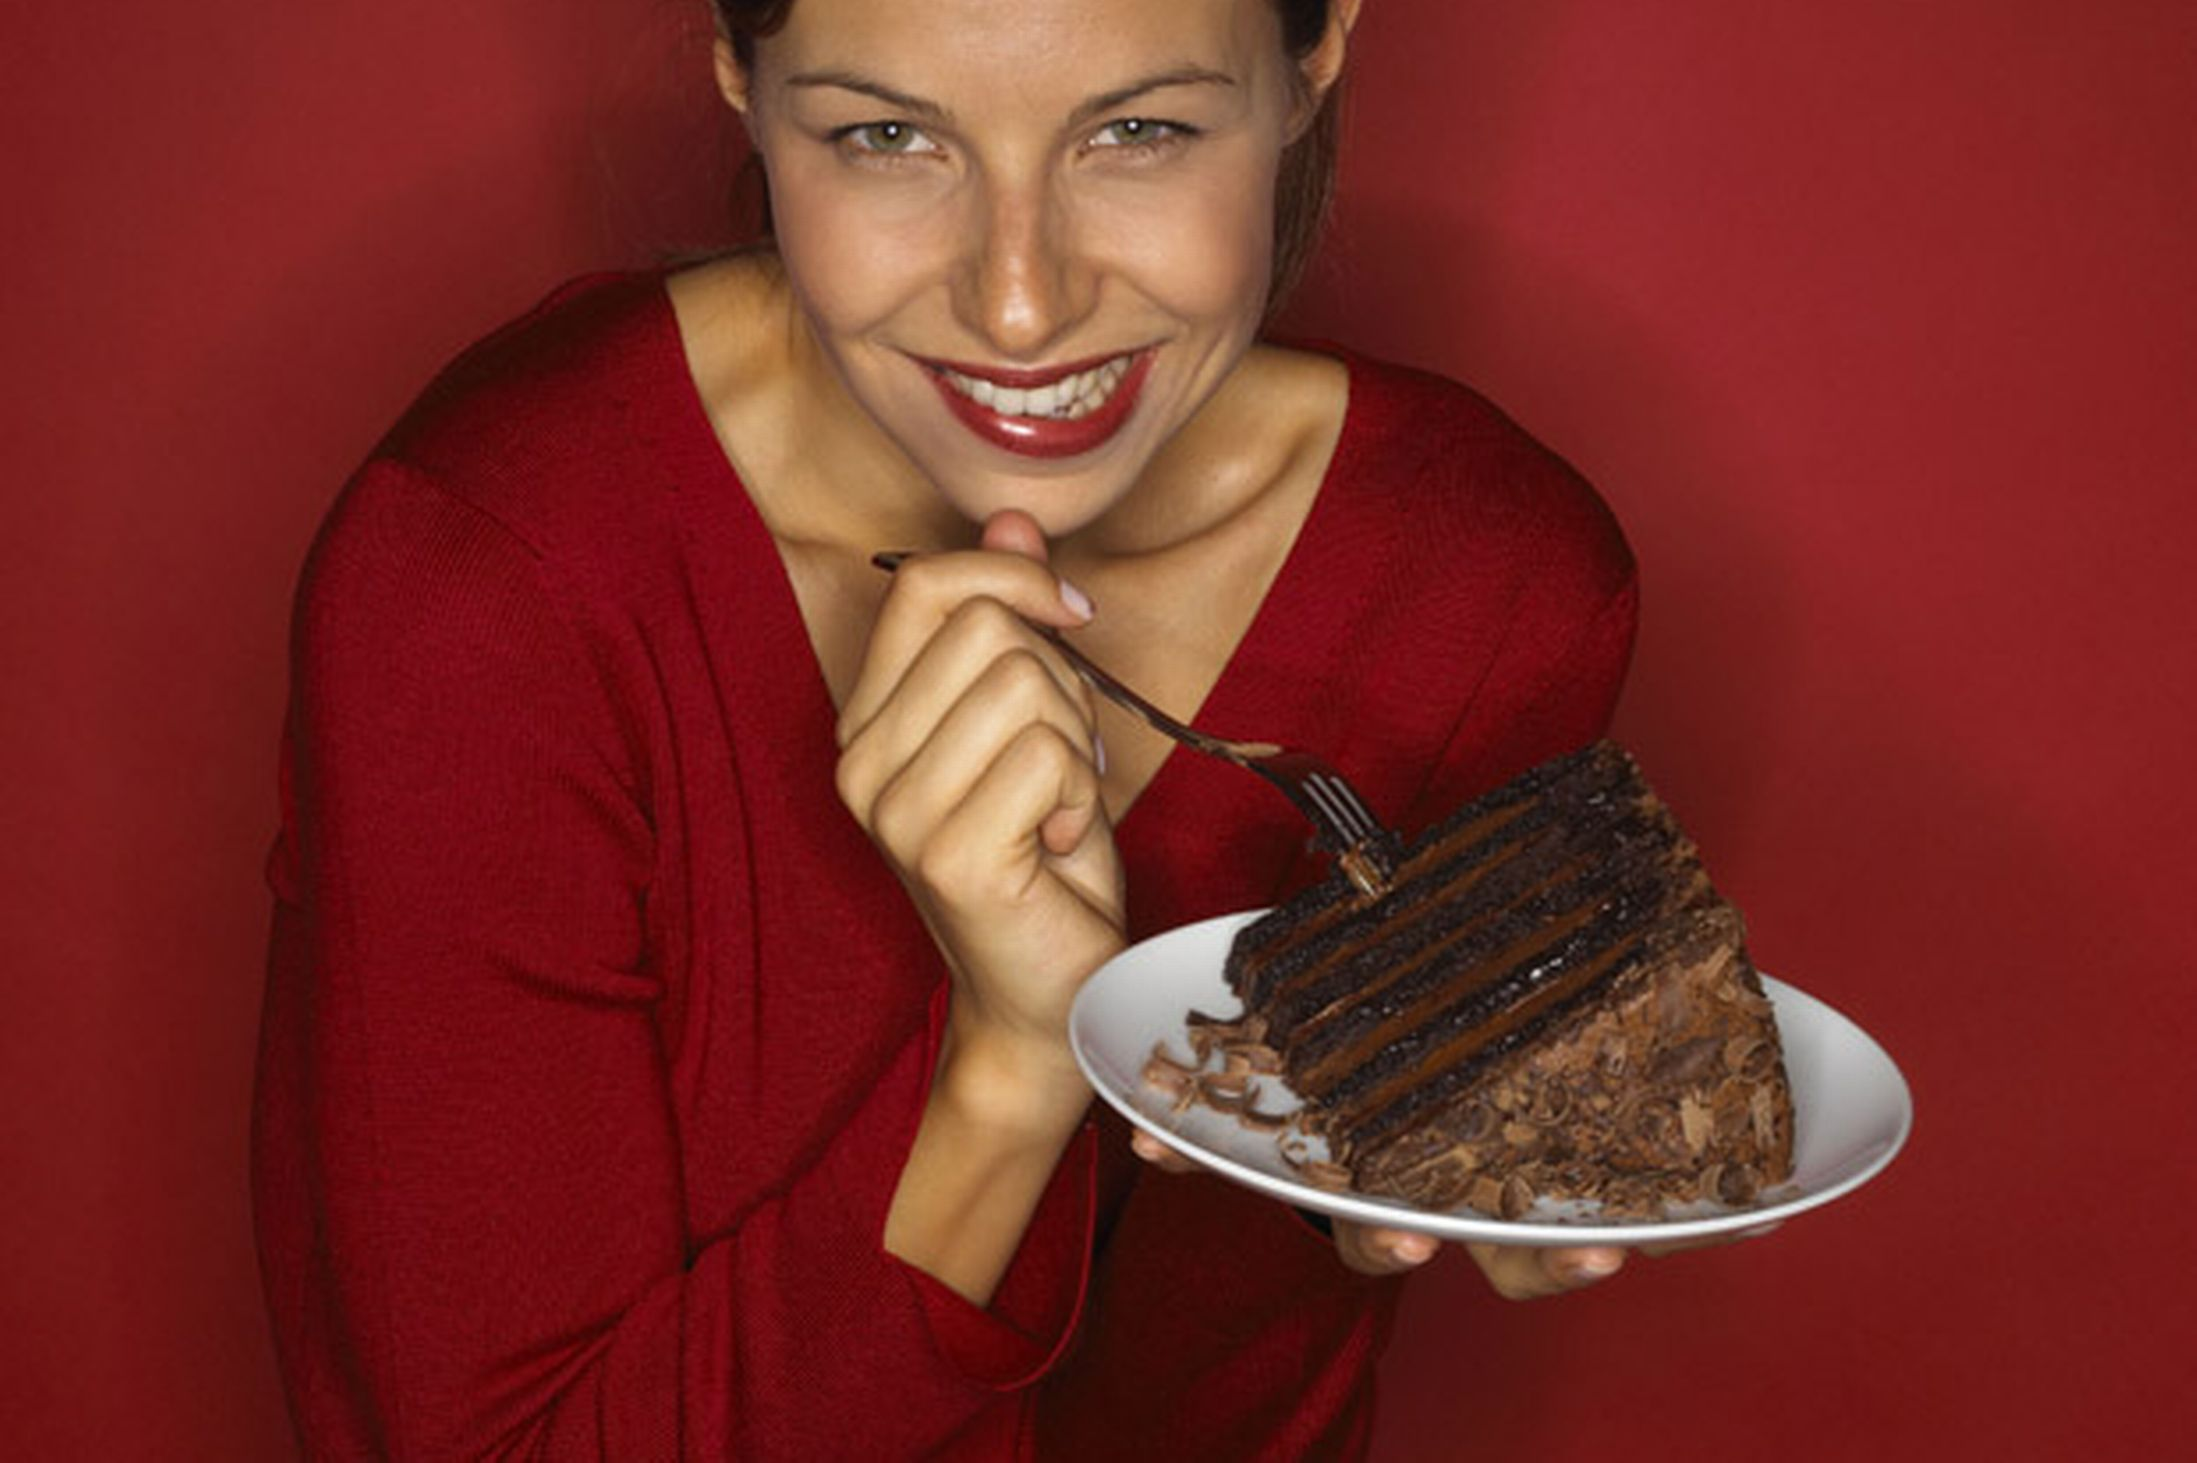 6 Foods That Are Good For Your Mood